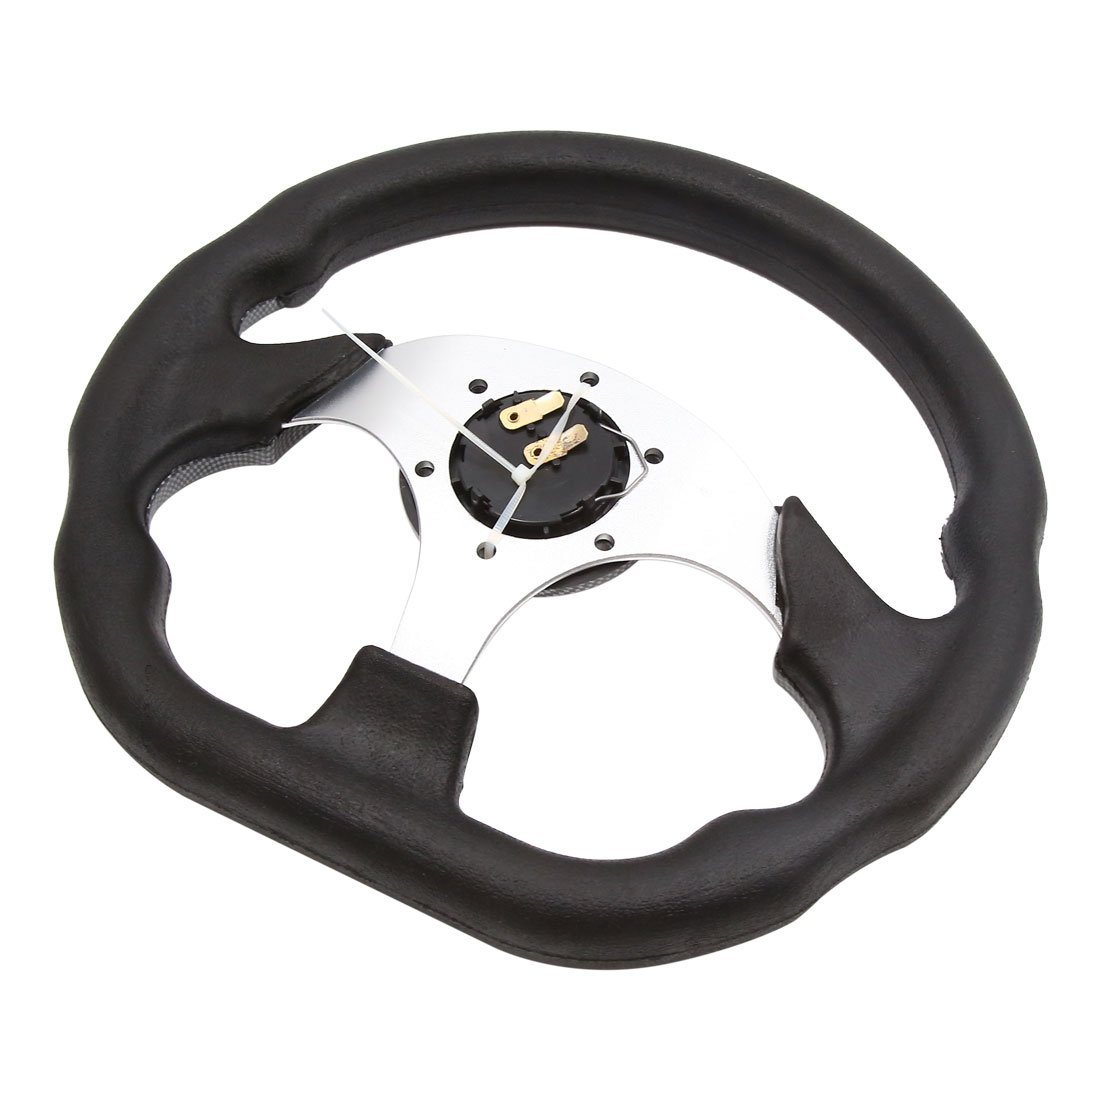 uxcell/® 320mm Outer Dia 6 Holes Anti Slip Steering Wheel Carbon Fiber Pattern for Car